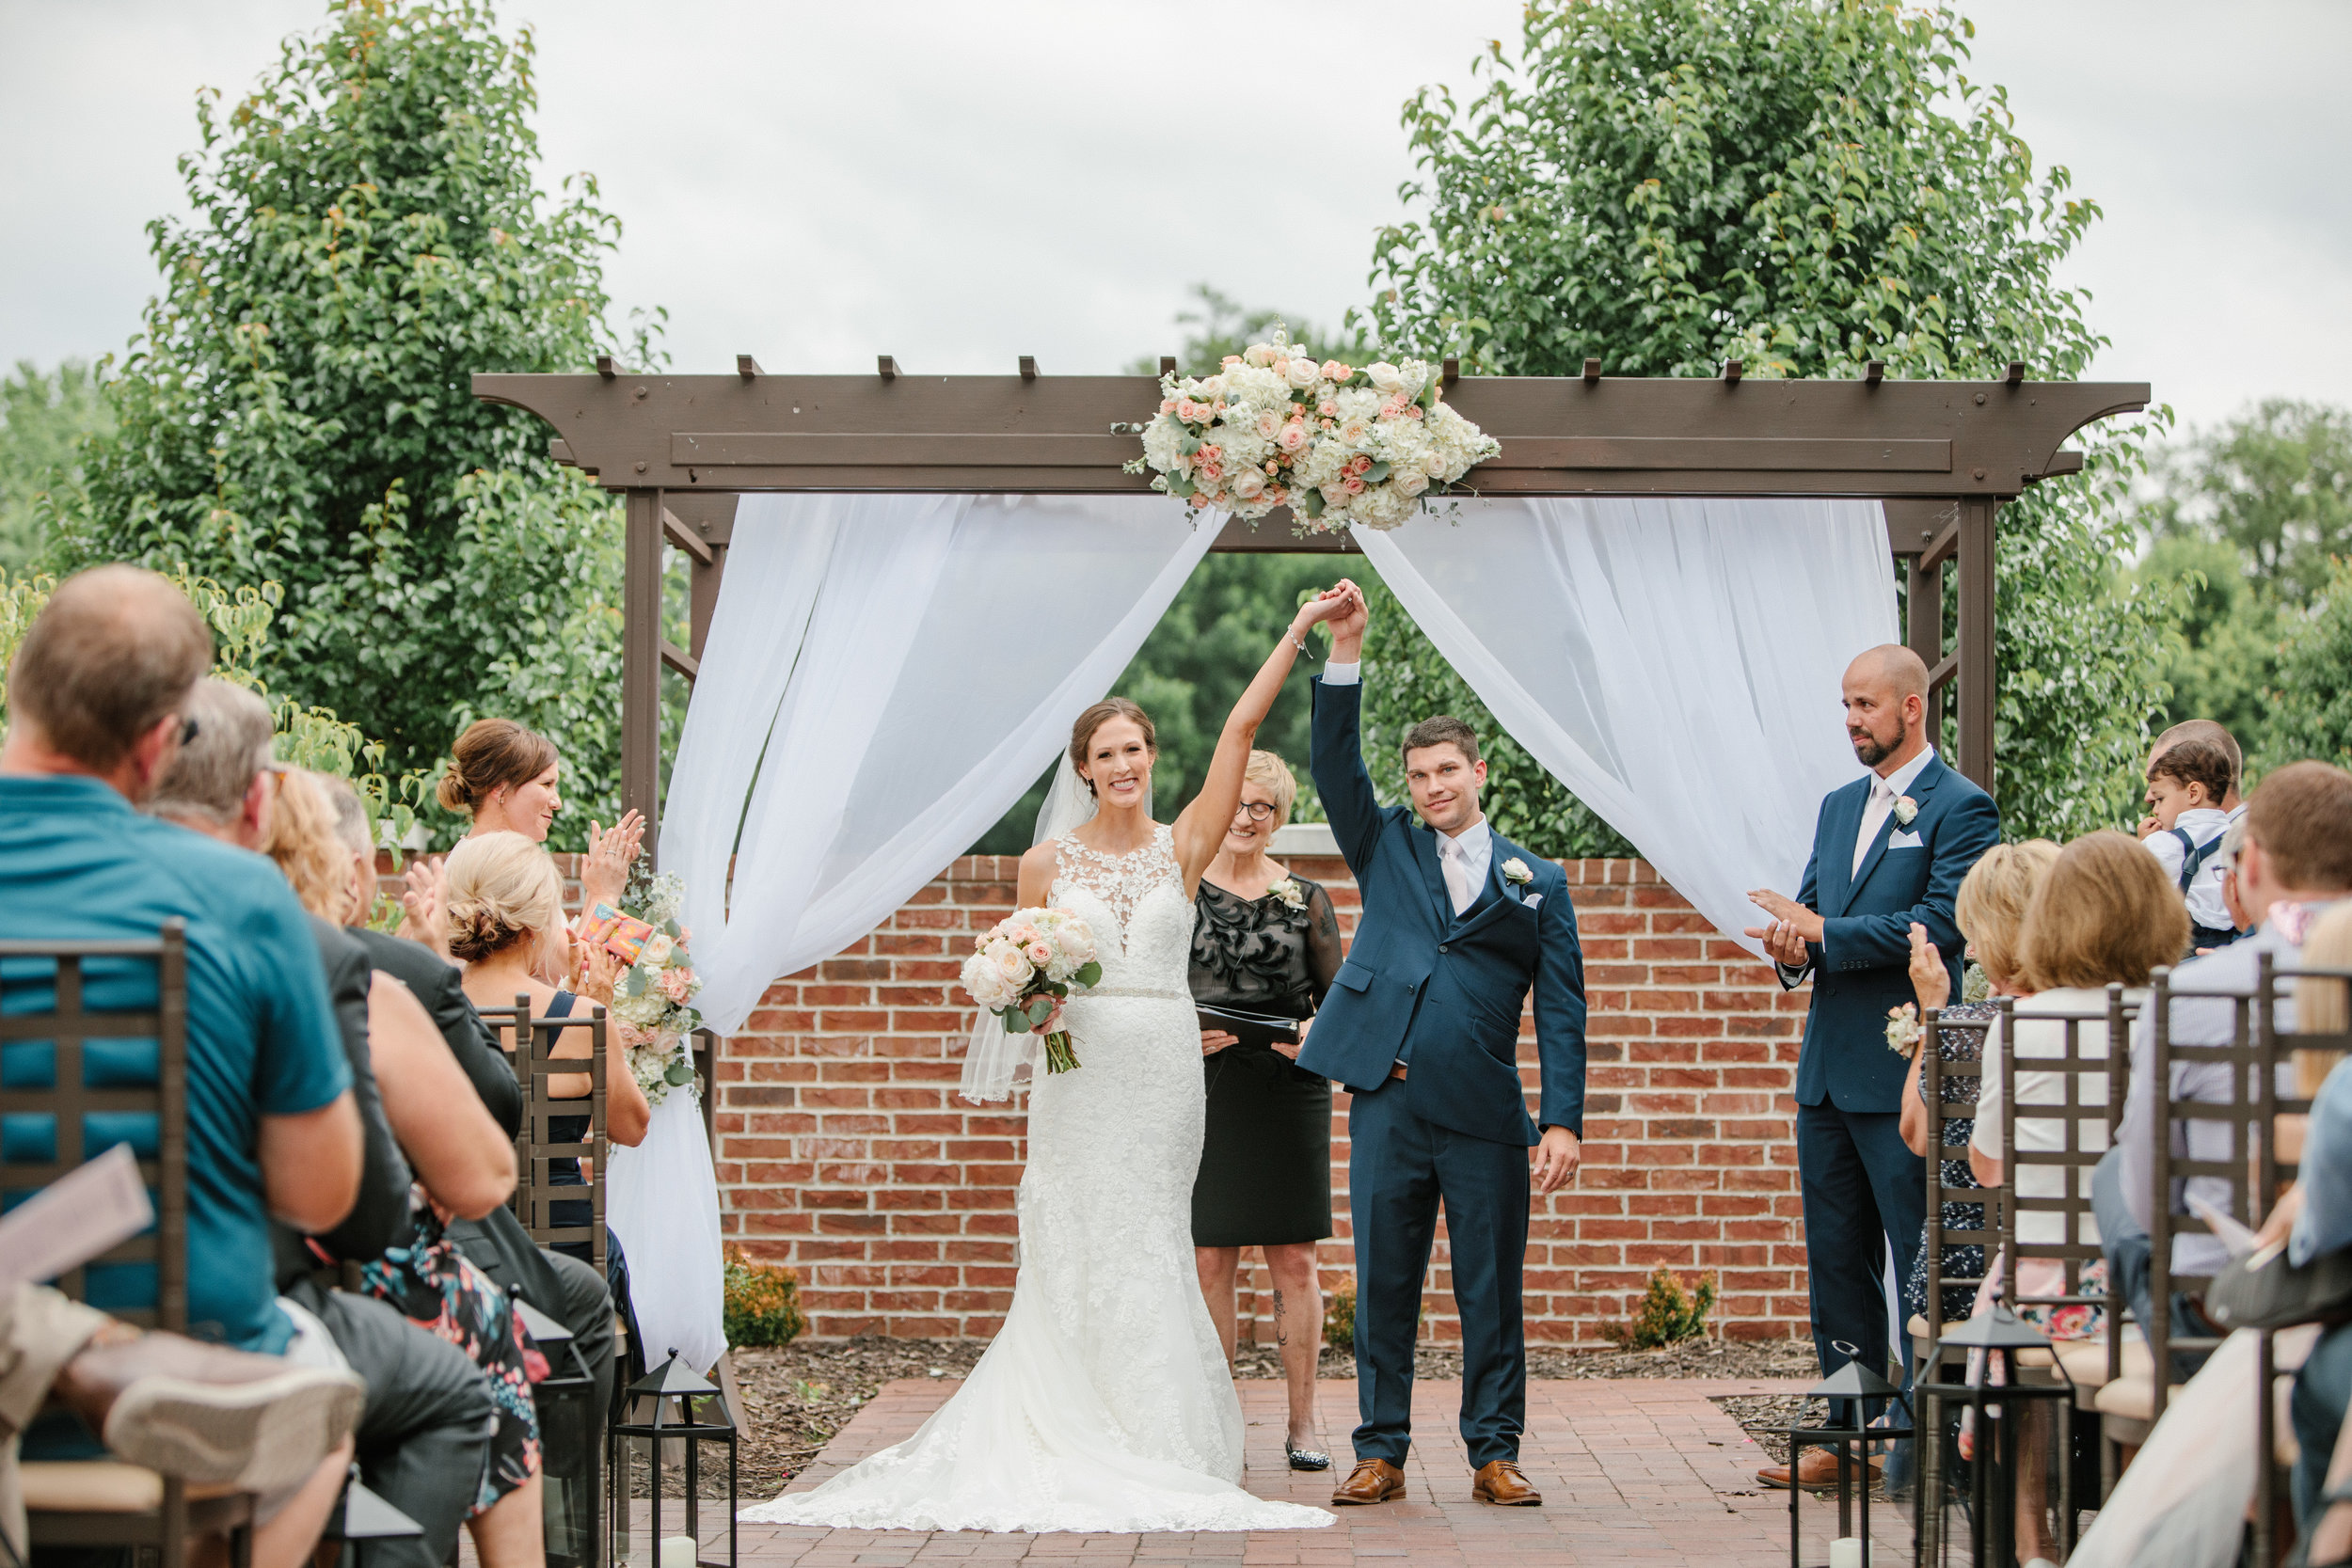 des moines wedding ceremony outdoors